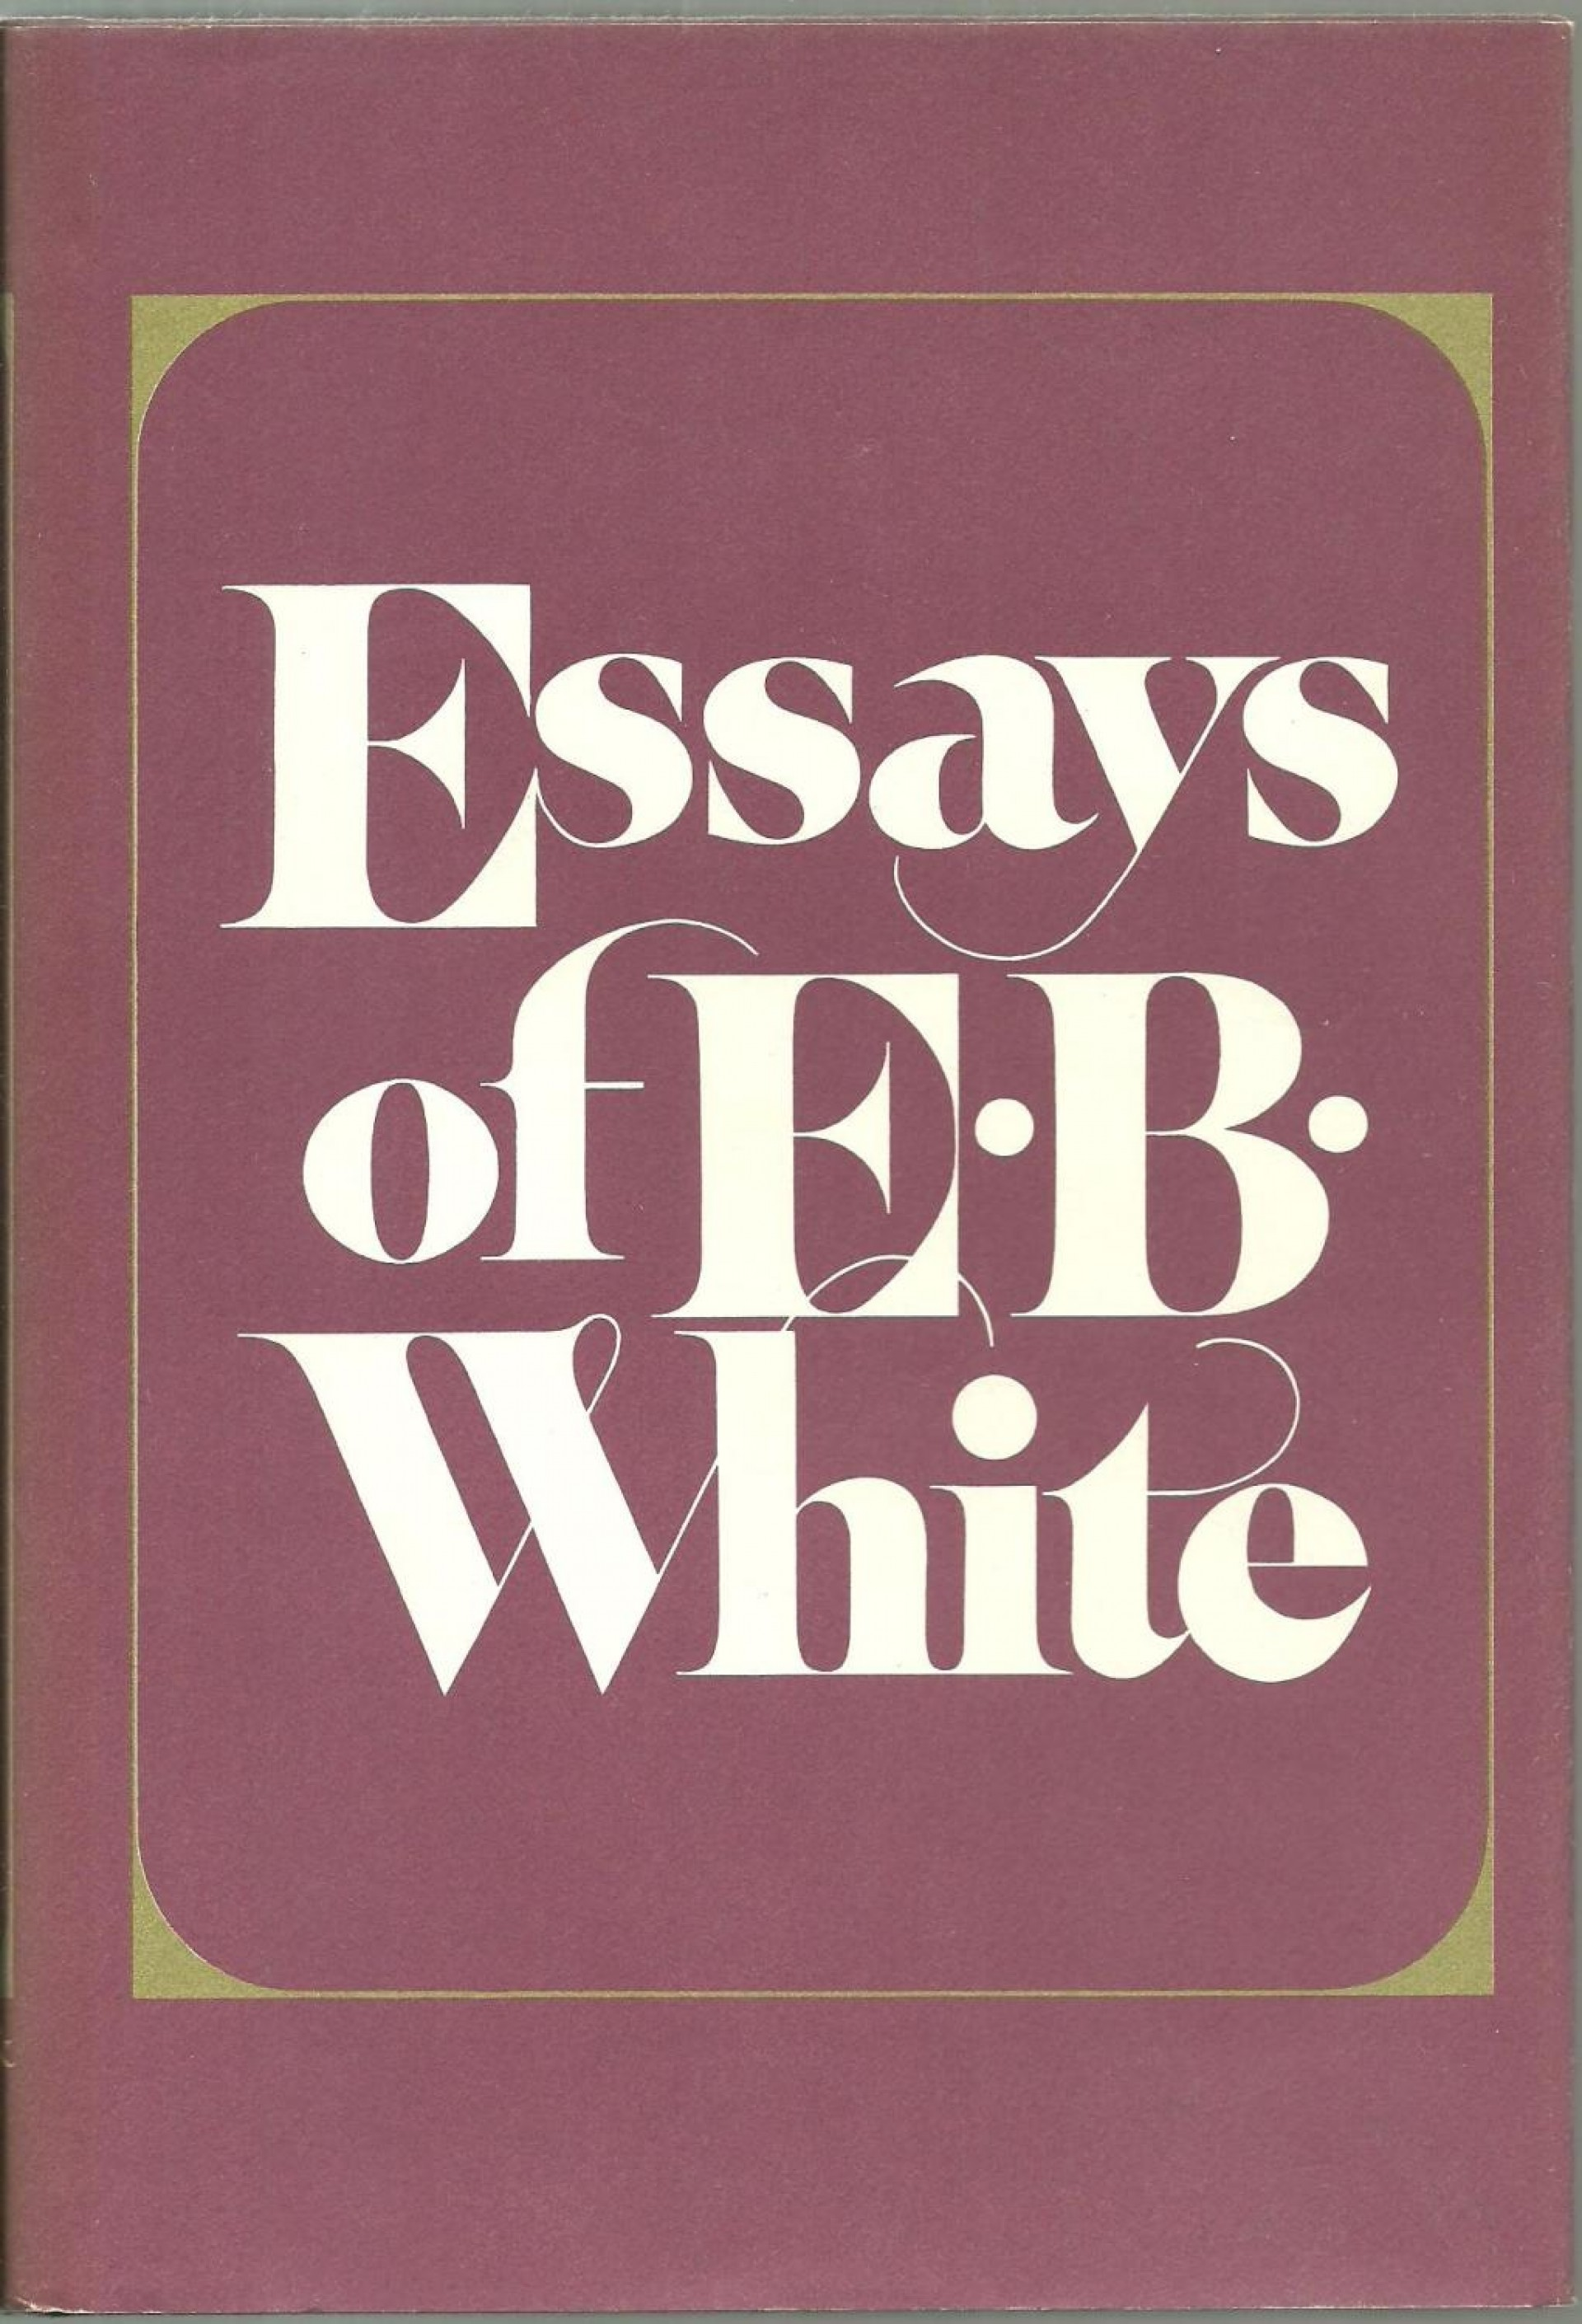 007 Essays Of White Essay Impressive Eb Table Contents Analysis White's Once More To The Lake 1920